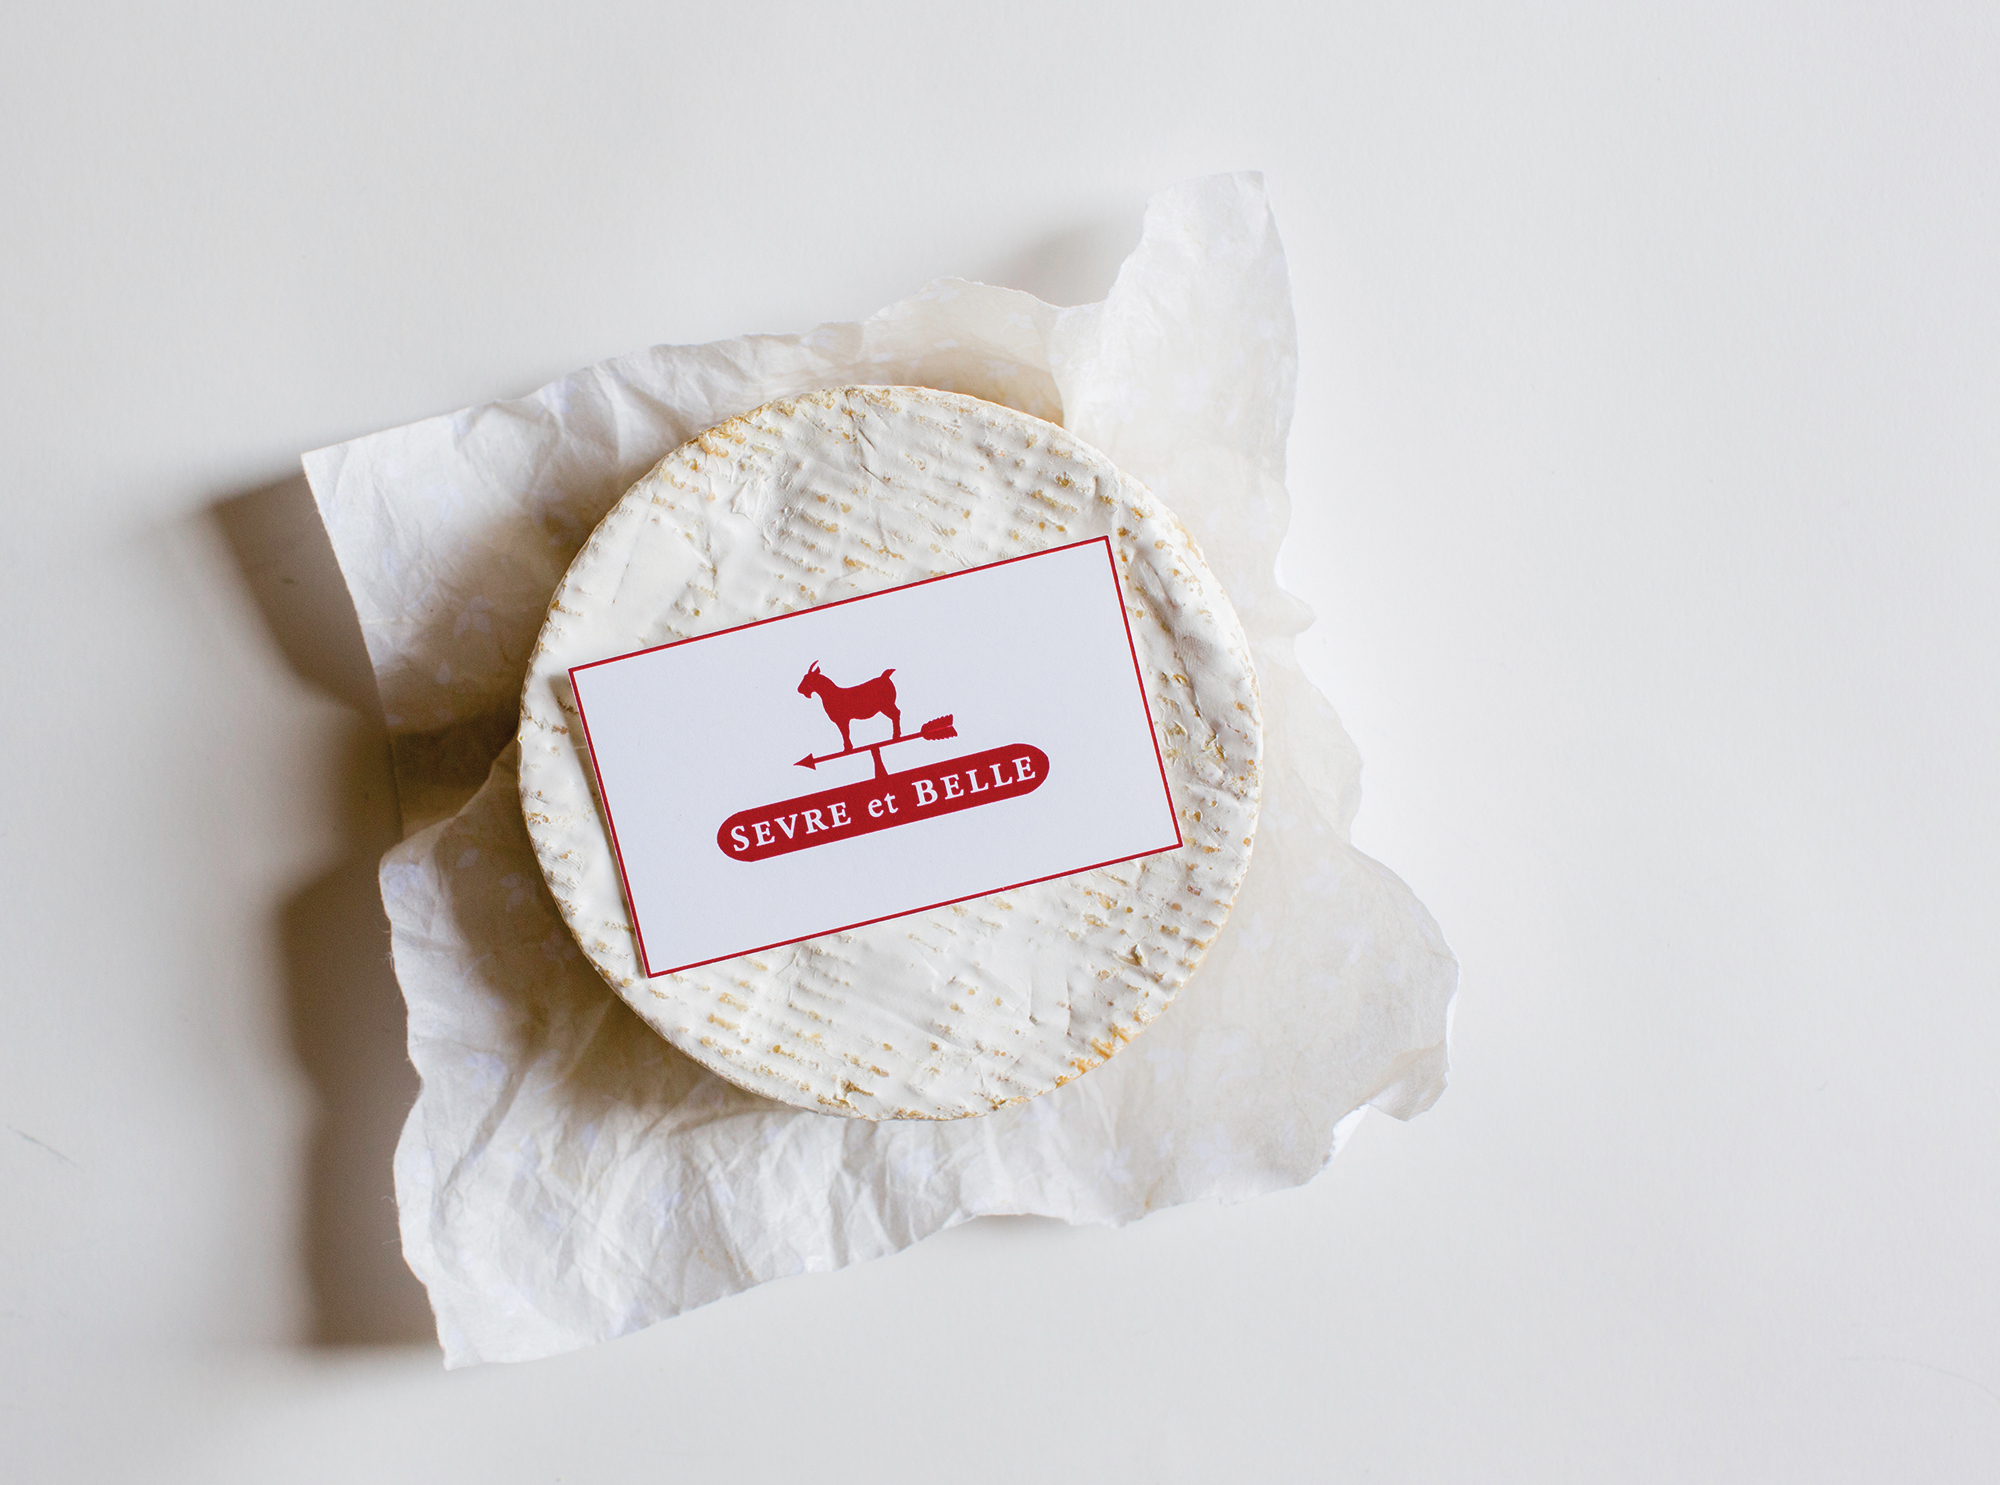 Cheese_BusinessCard_web.jpg